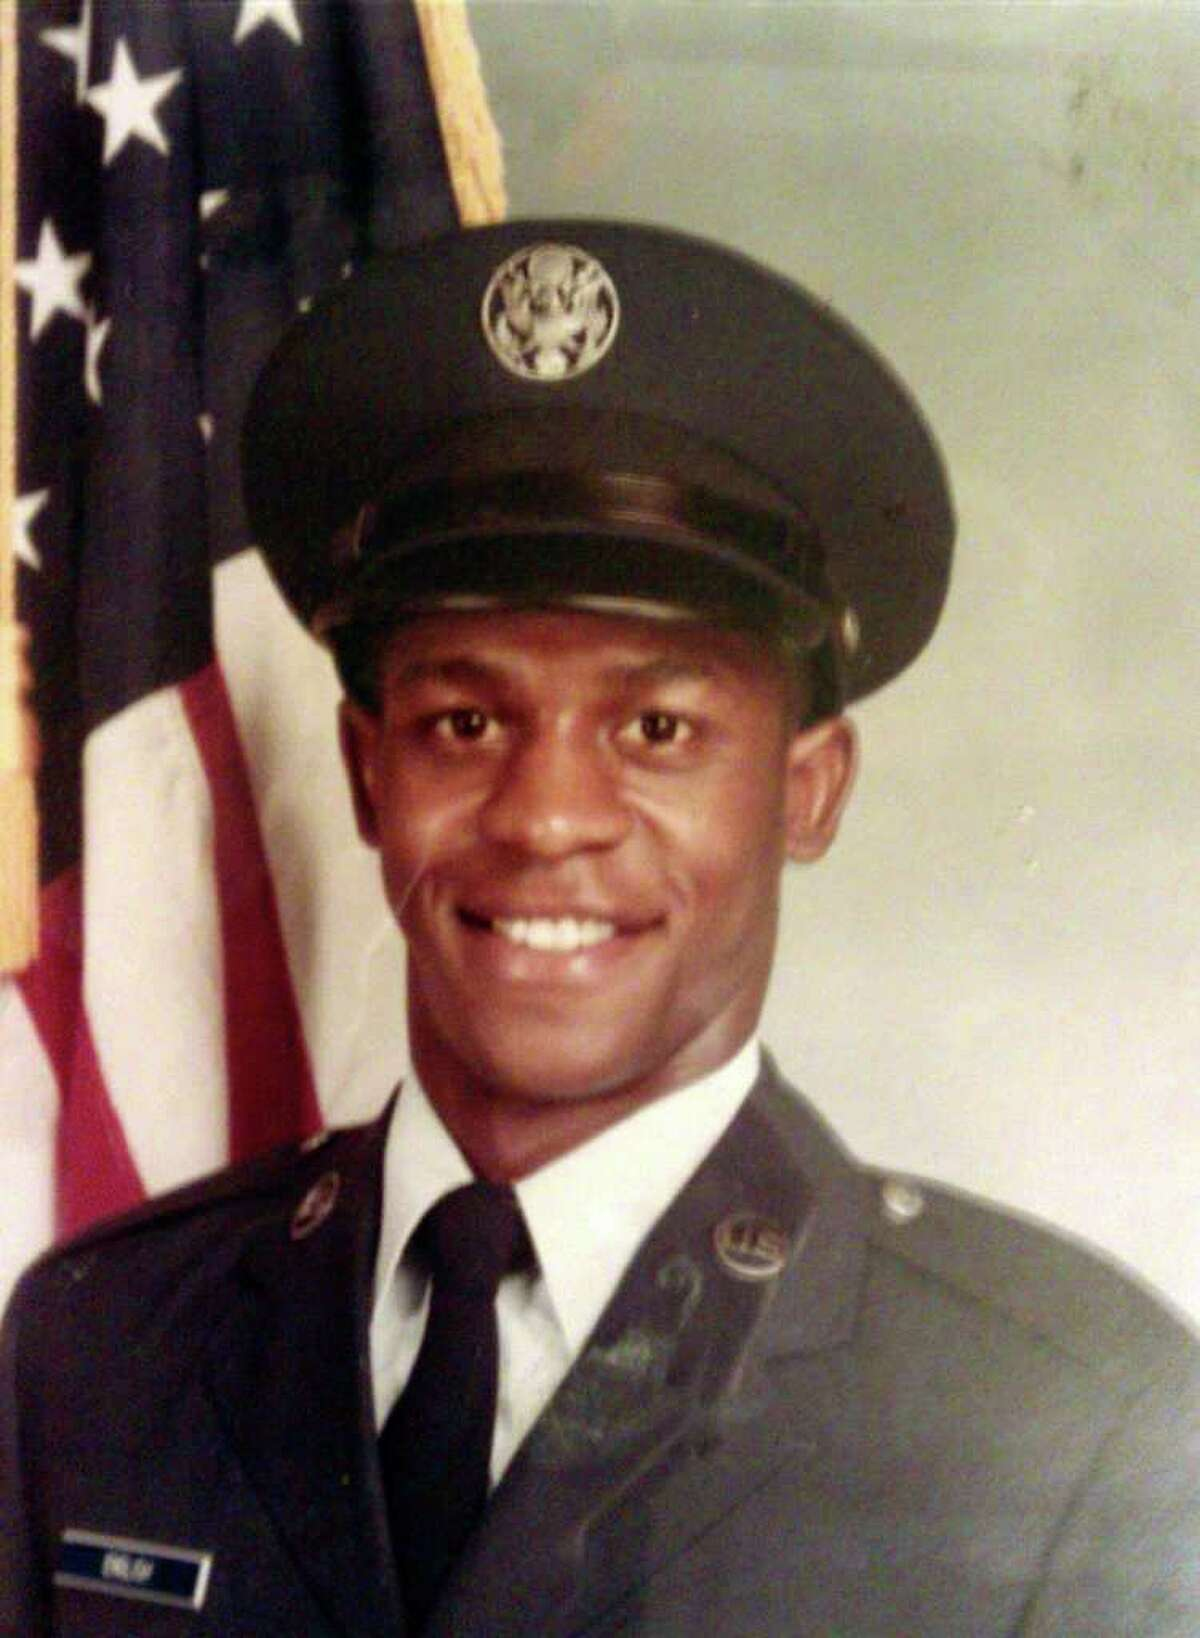 Douglas Ray English, 47, was shot and killed Tuesday night in a drive-by shooting in the 900 block of East Crockett. His family said he was 18 when this photo was taken as he entered the U.S. Air Force in the early 1980s.